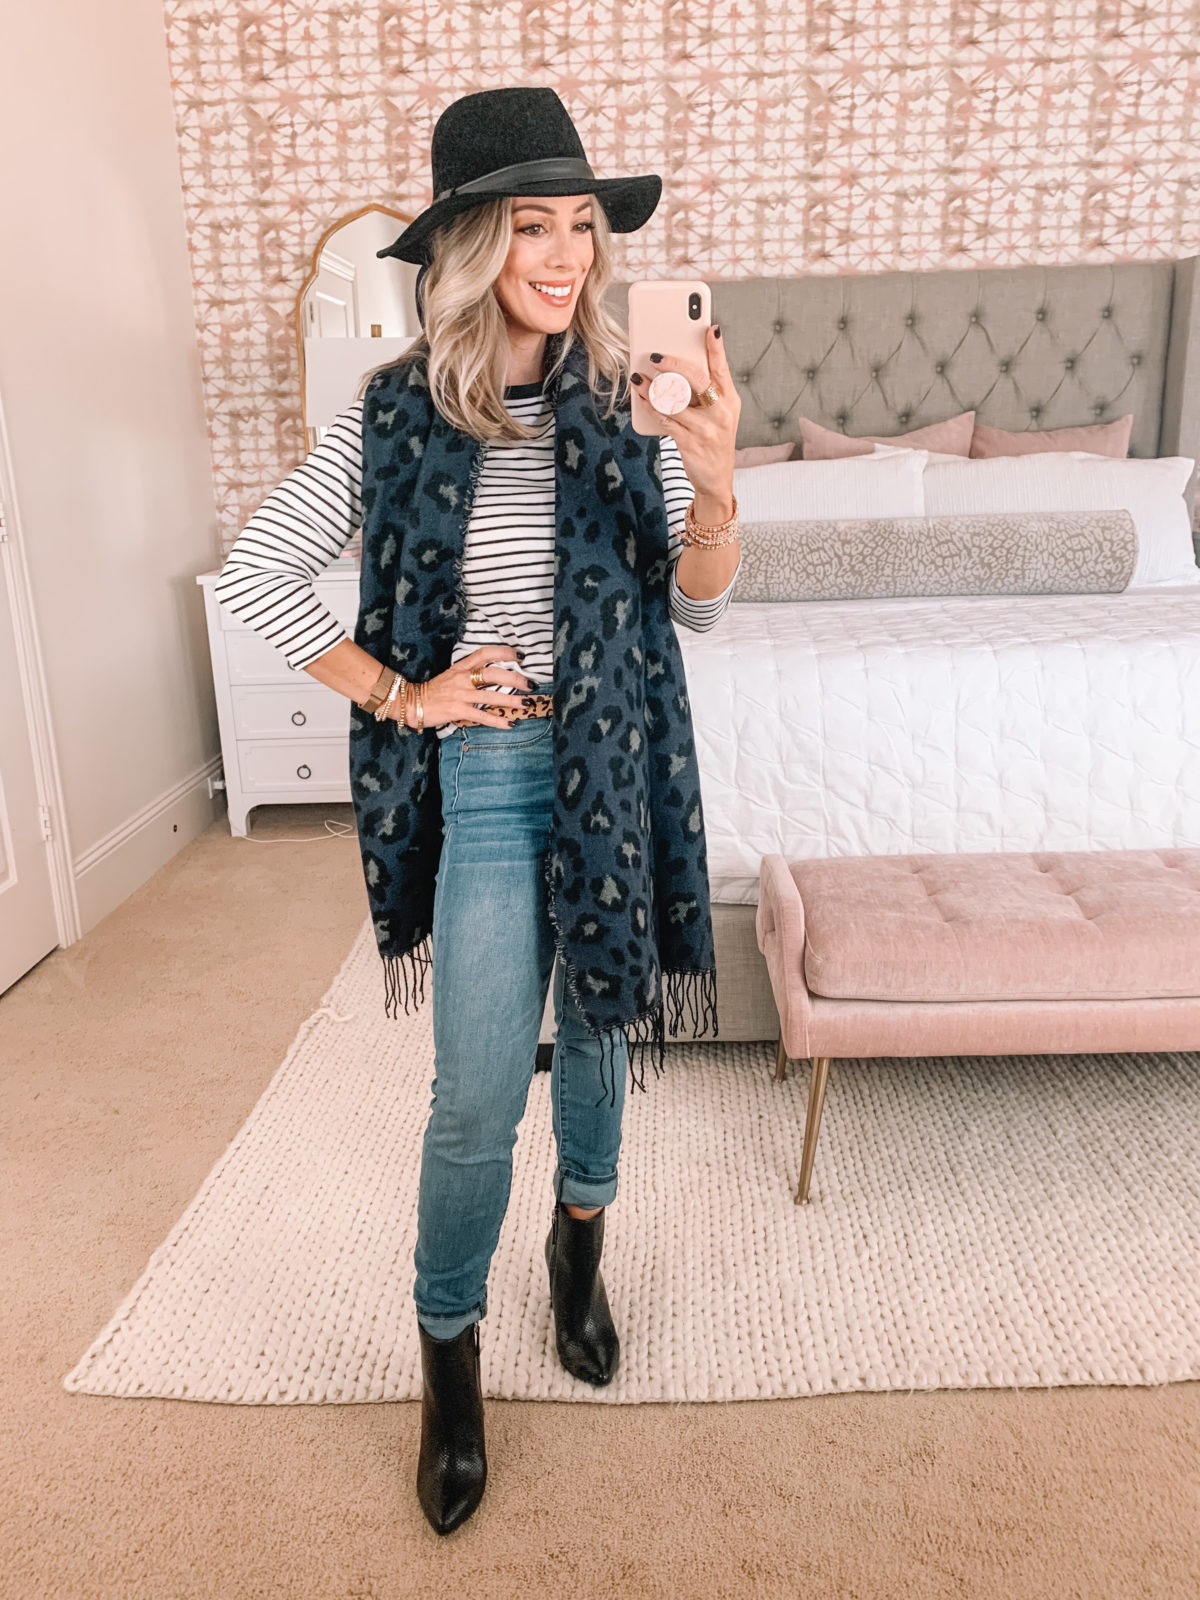 Walmart Fashion Finds, Striped Top, Leopard Belt, Jeans, Booties, Scarf, Hat